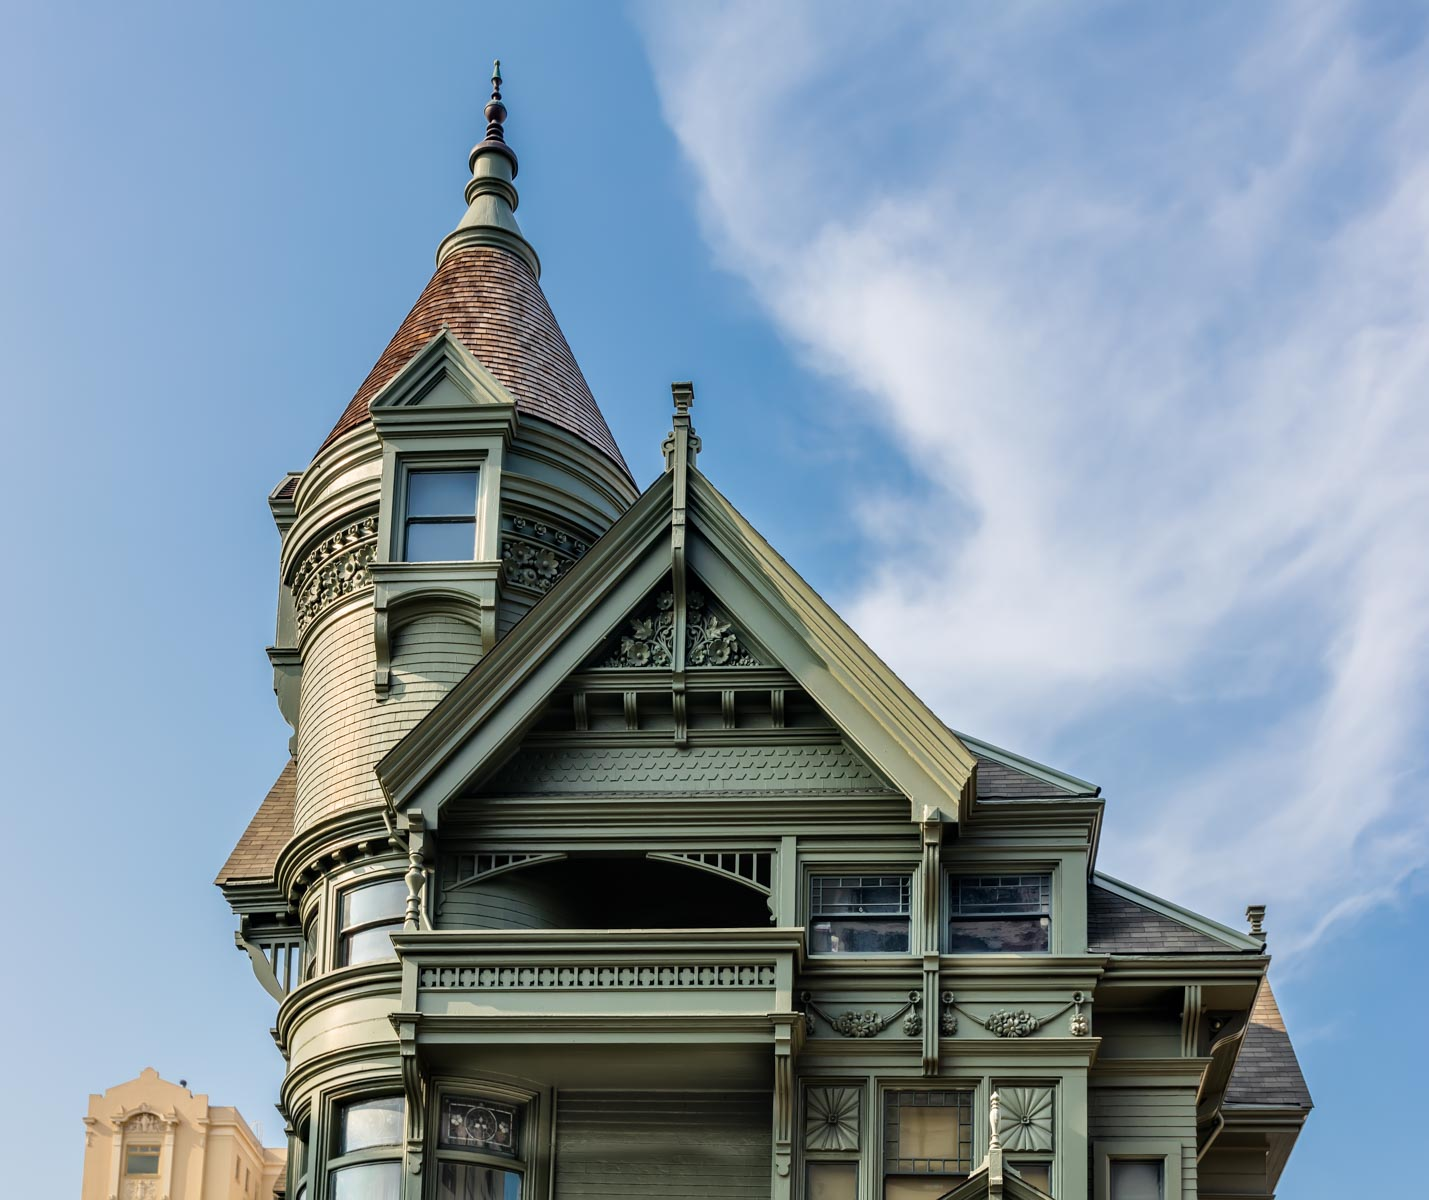 Haas–Lilienthal House Museum in Pacific Heights